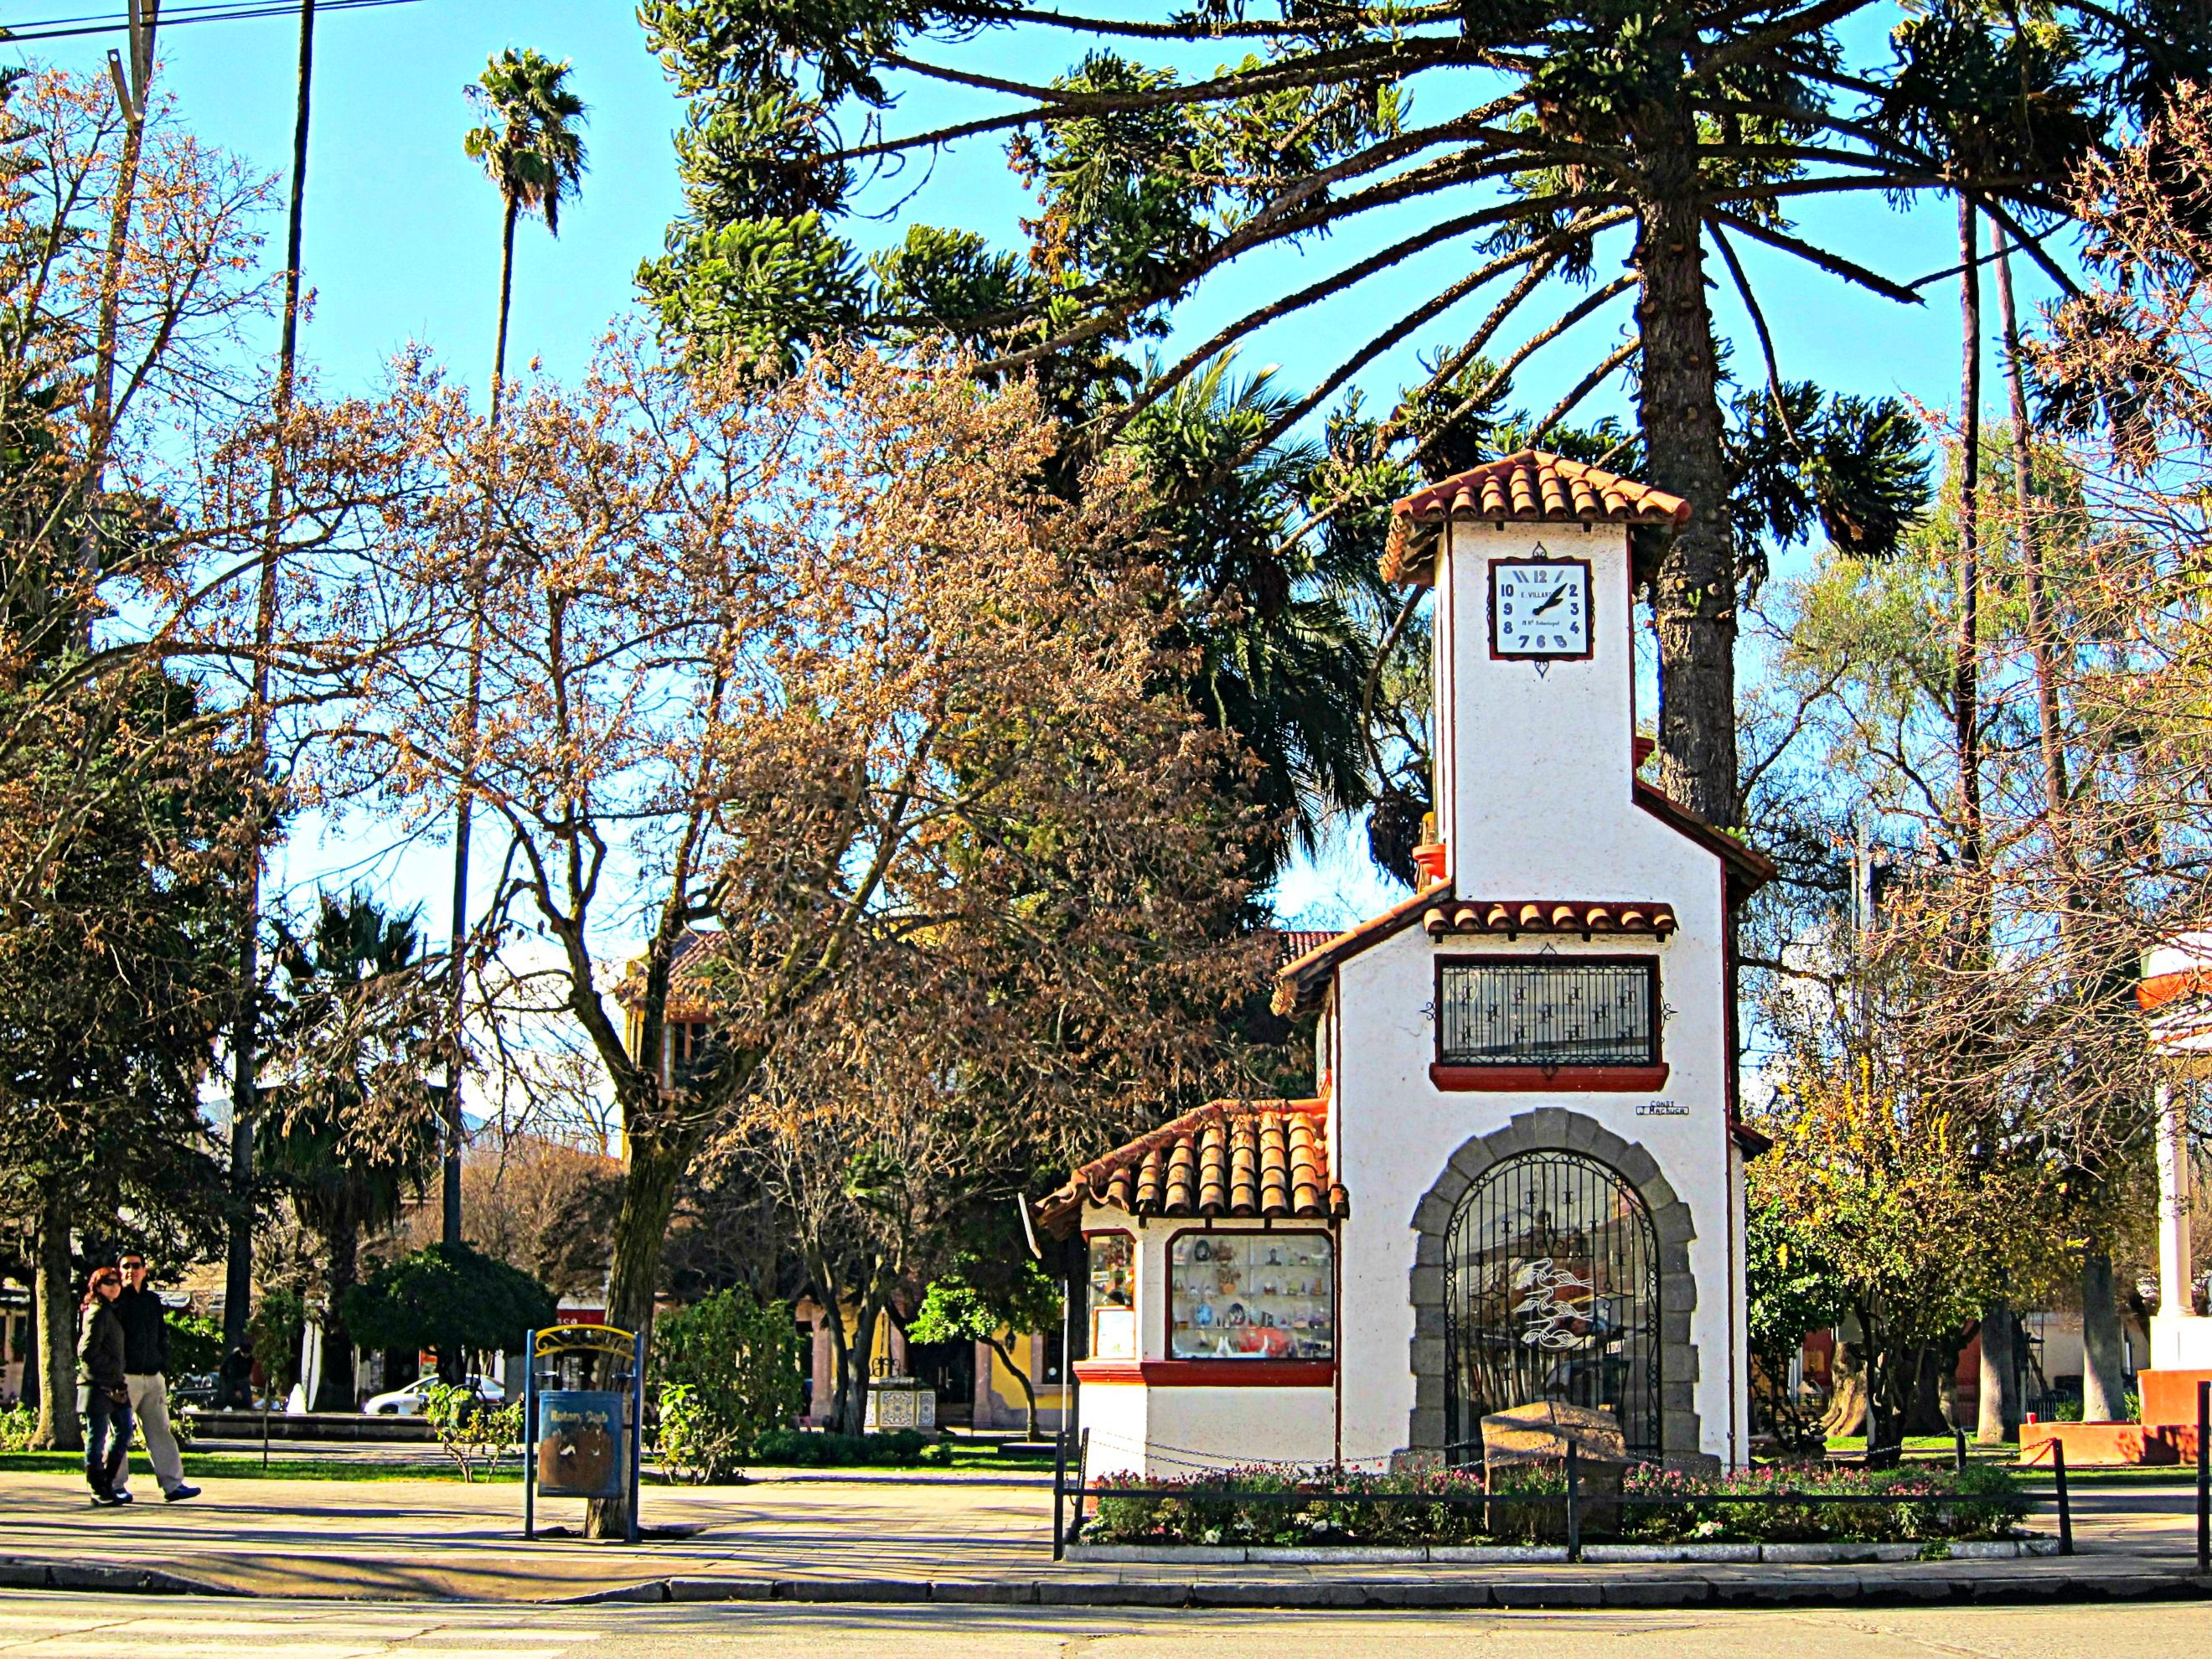 Santa cruz chile plaza de armas 2011 foto sanfurgo for Santa cruz chile